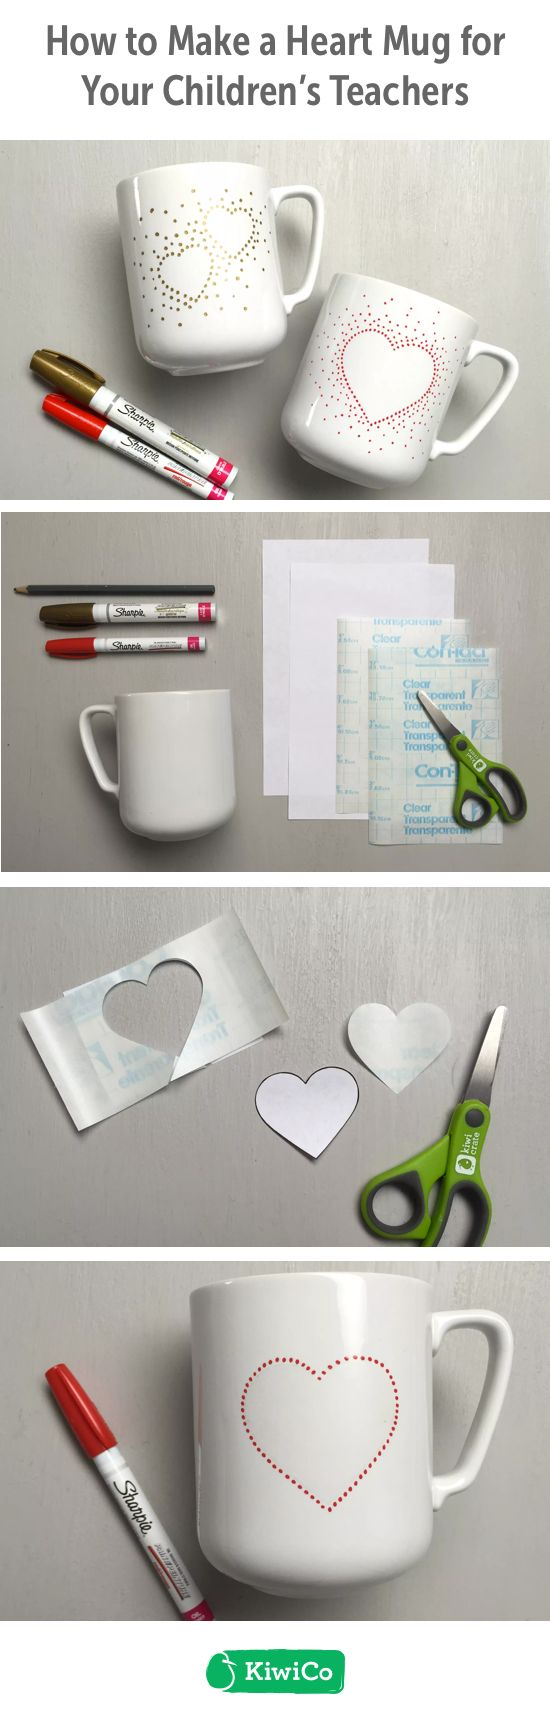 Heart Mug DIY. This do-it-yourself craft is great for Valentine's Day gifts for teachers, friends, and family. You can work together with your girls, boys, toddlers, and teens to show your appreciation for special ones. This is an inexpensive art project that will last for years! All you need is contact paper, a mug, and permanent paint pens. #STEAM